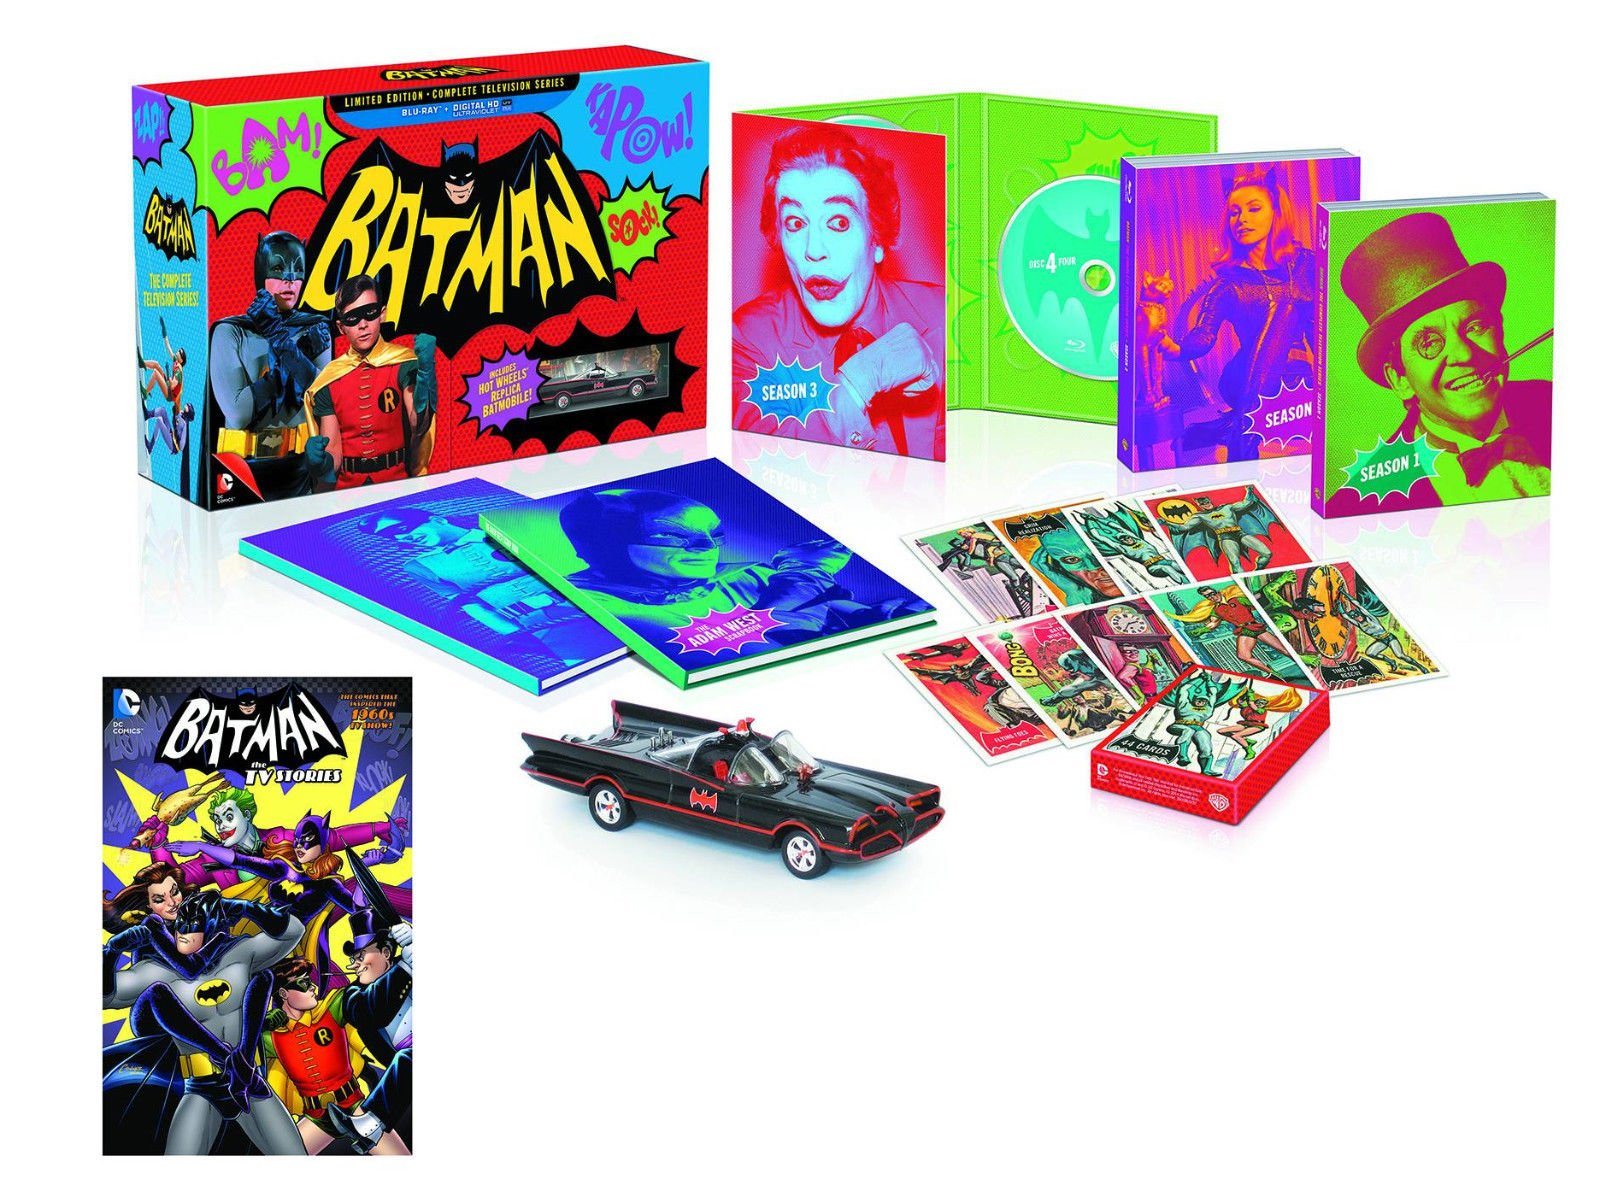 Batman Complete TV Series Previews Exclusive Limited Edition Blu-ray & Book Set